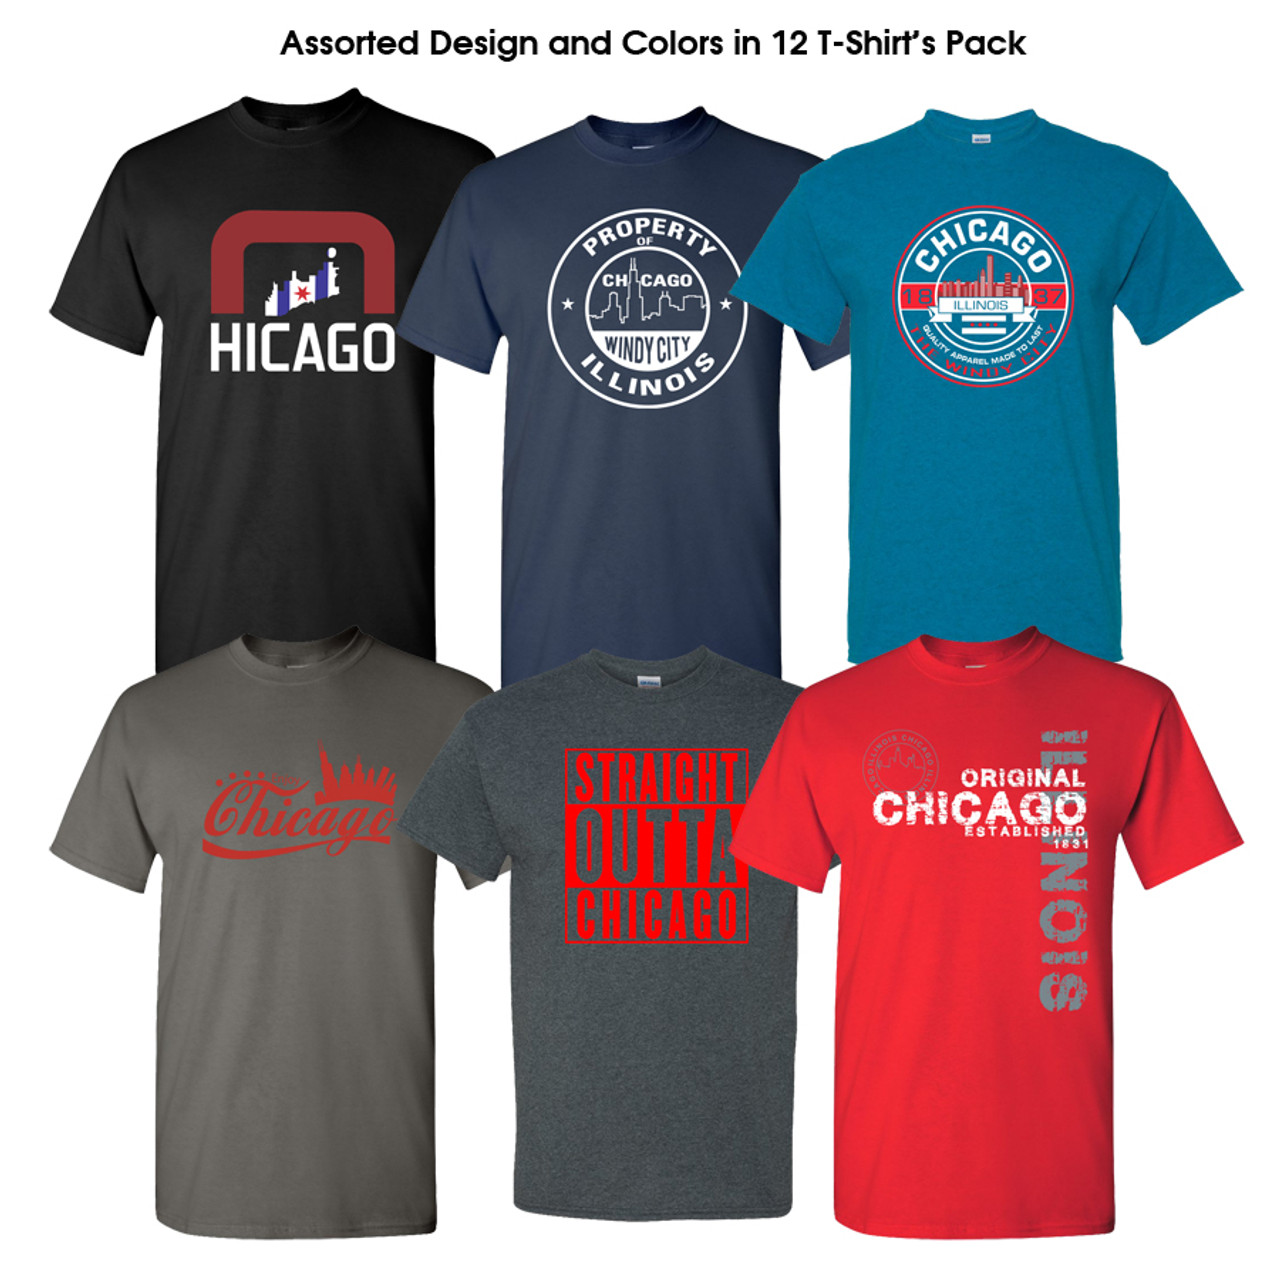 3c51d69fcf Chicago Printed Tshirts Assorted Designs 12 Pcs Pack - CPS99